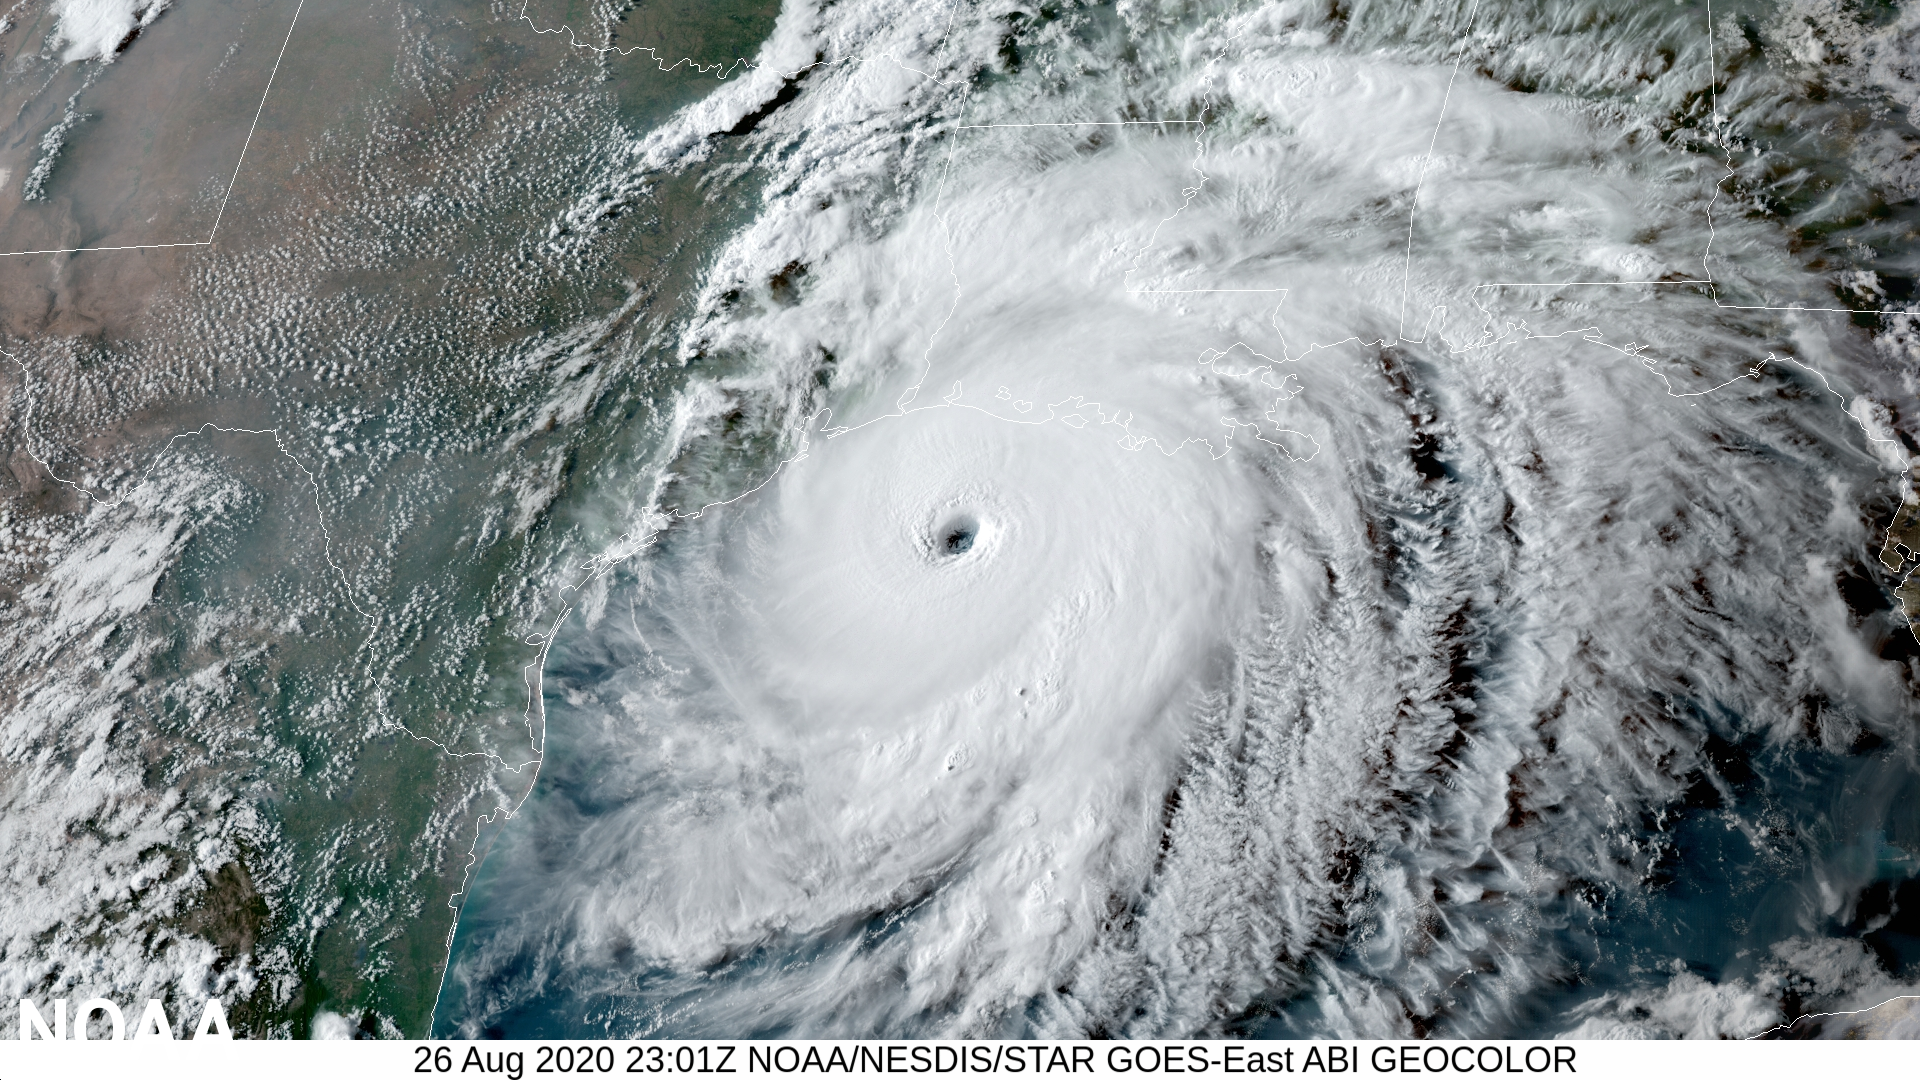 2021 Atlantic hurricane season starts June 1.  photo from NOAA depicting an image of Hurricane Laura on August 26, 2020 at it approached the Gulf Coast.